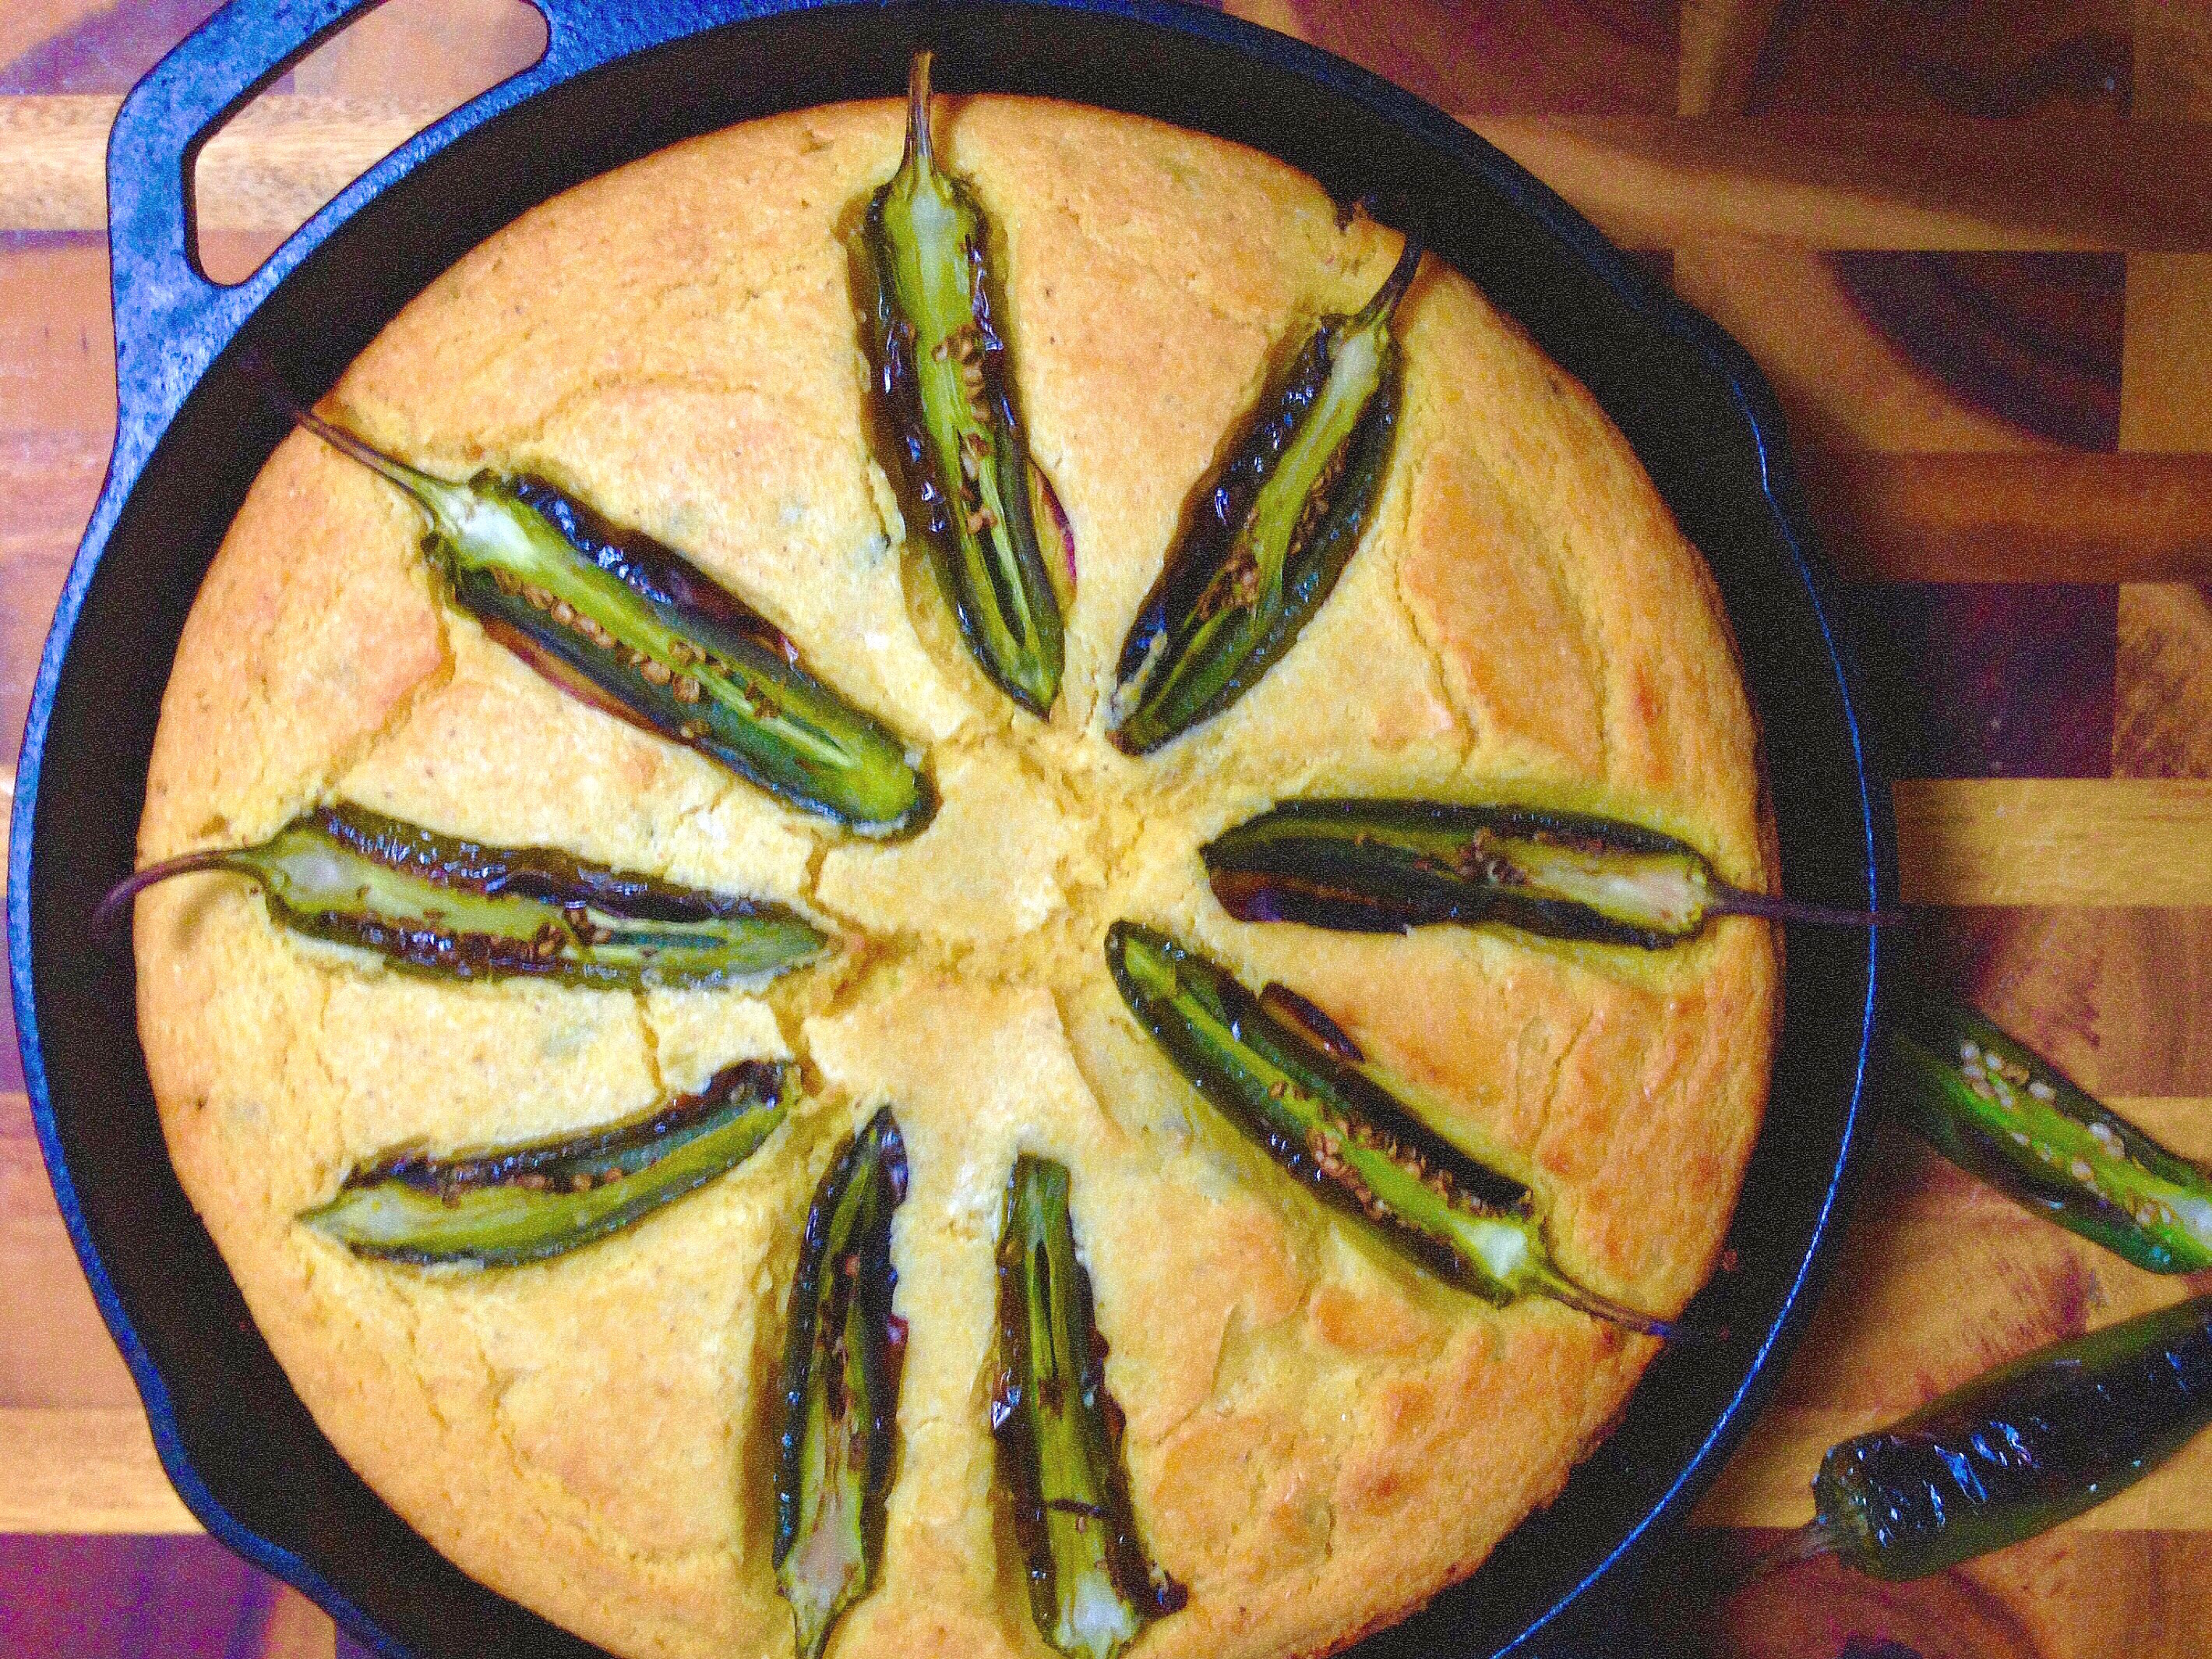 Southern cornbread with jalapeños and goat cheese!